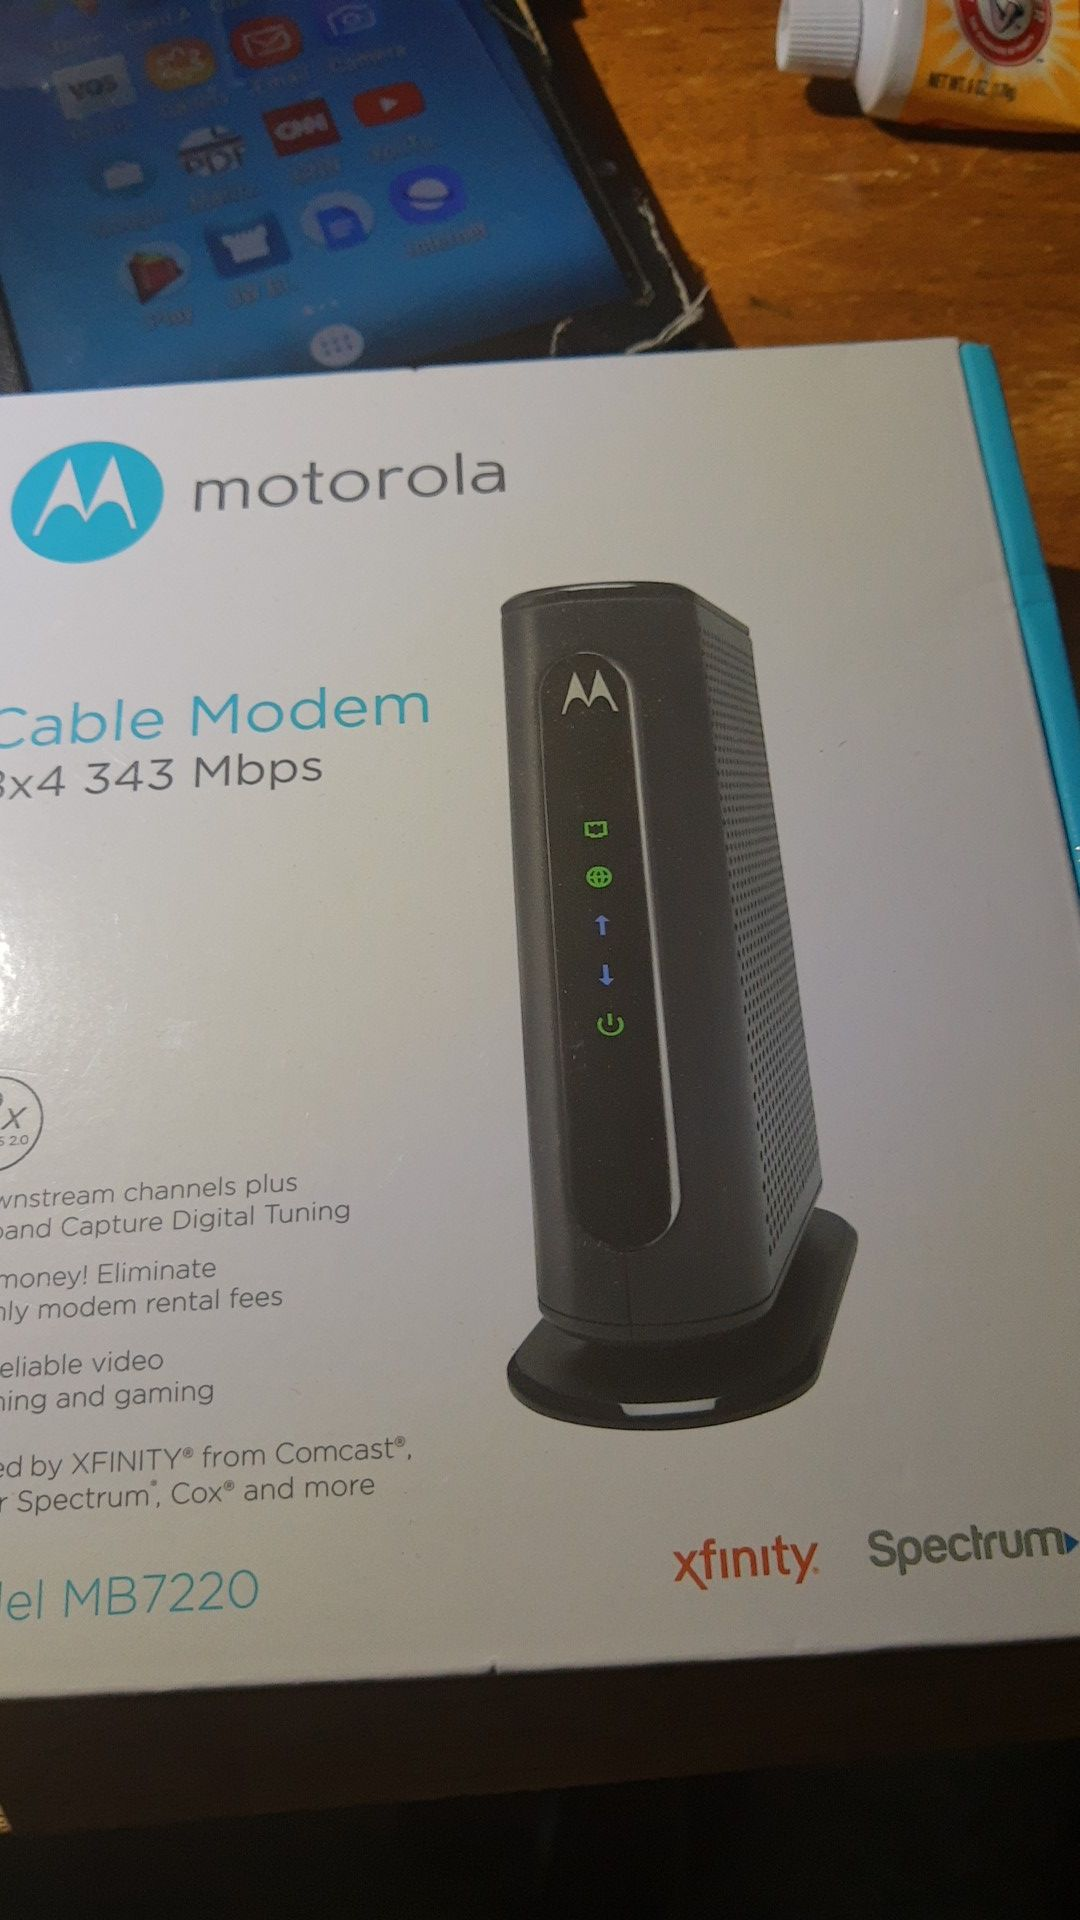 Motorola cable modem 8by4